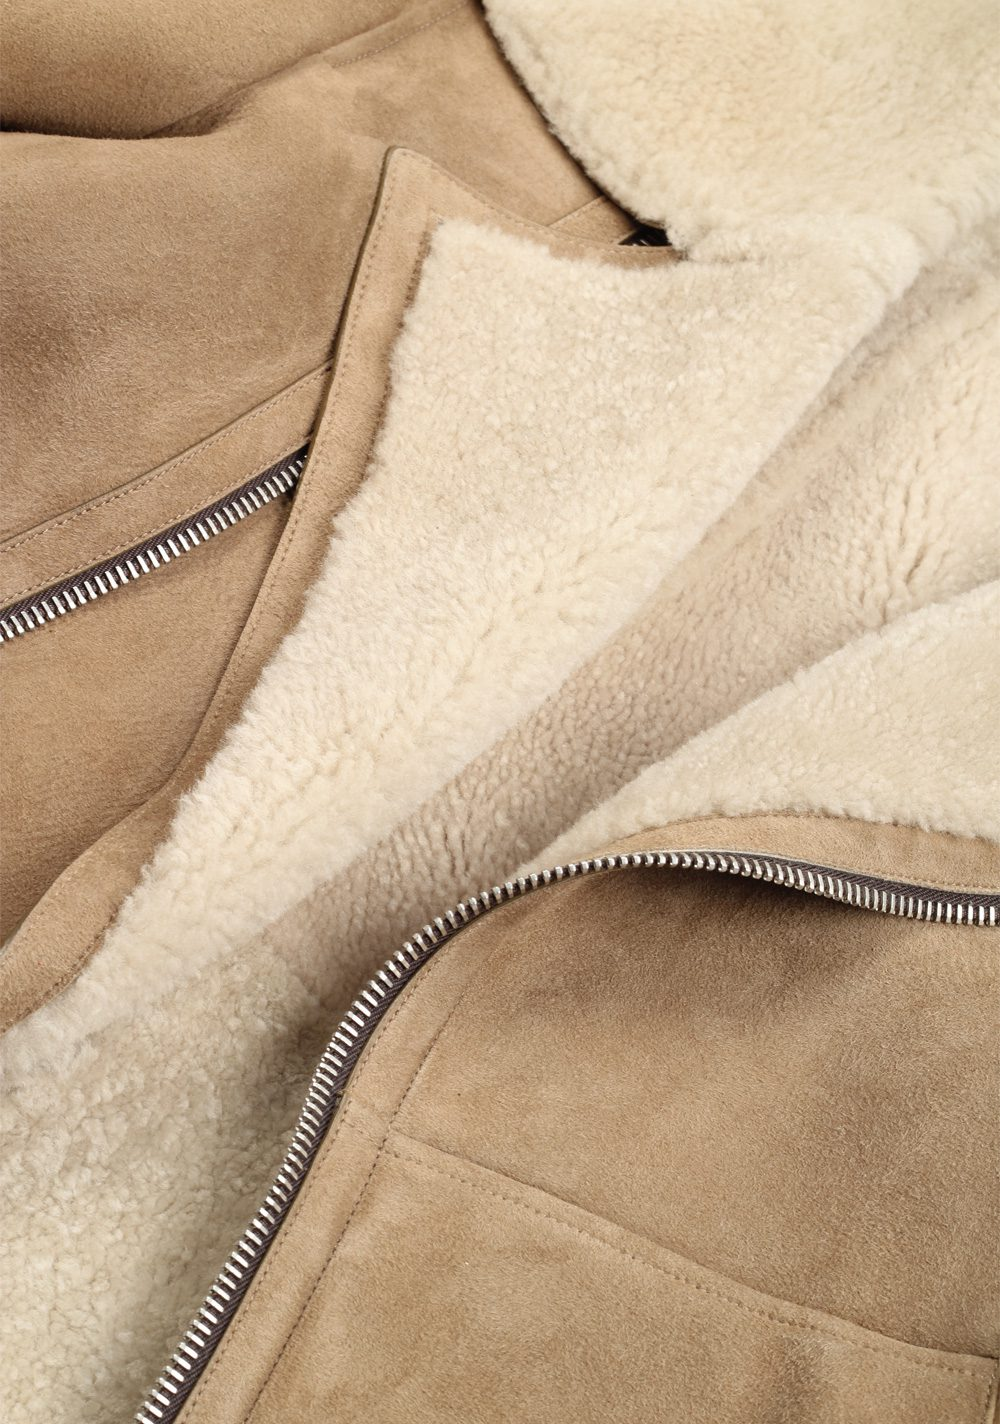 TOM FORD Sand Leather Suede Shearling Jacket Coat Size 48 / 38R U.S. Outerwear | Costume Limité